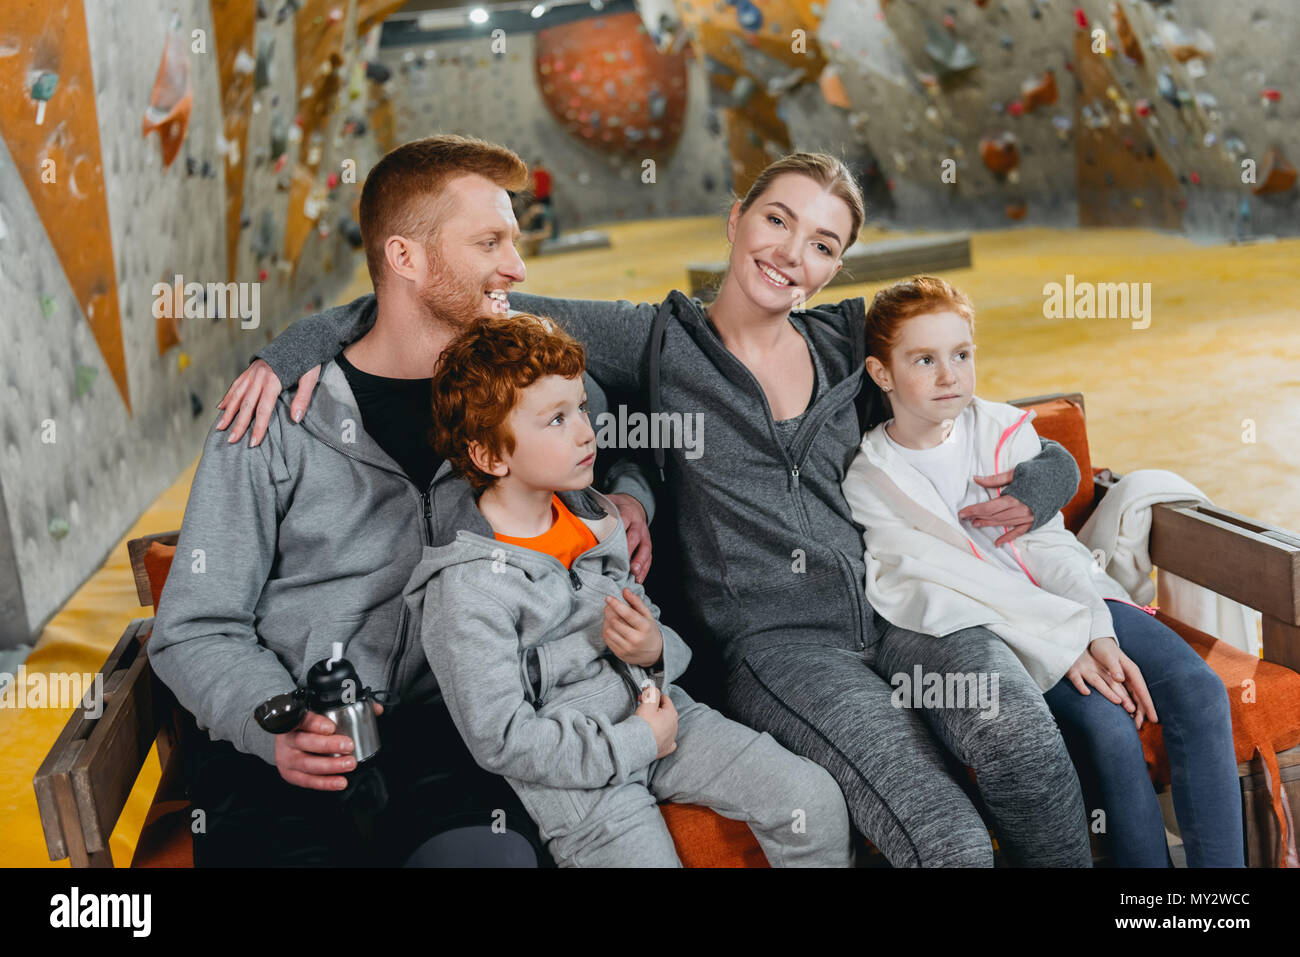 A family with kids at gym, sitting and relaxing on a bench, with climbing walls in the background - Stock Image